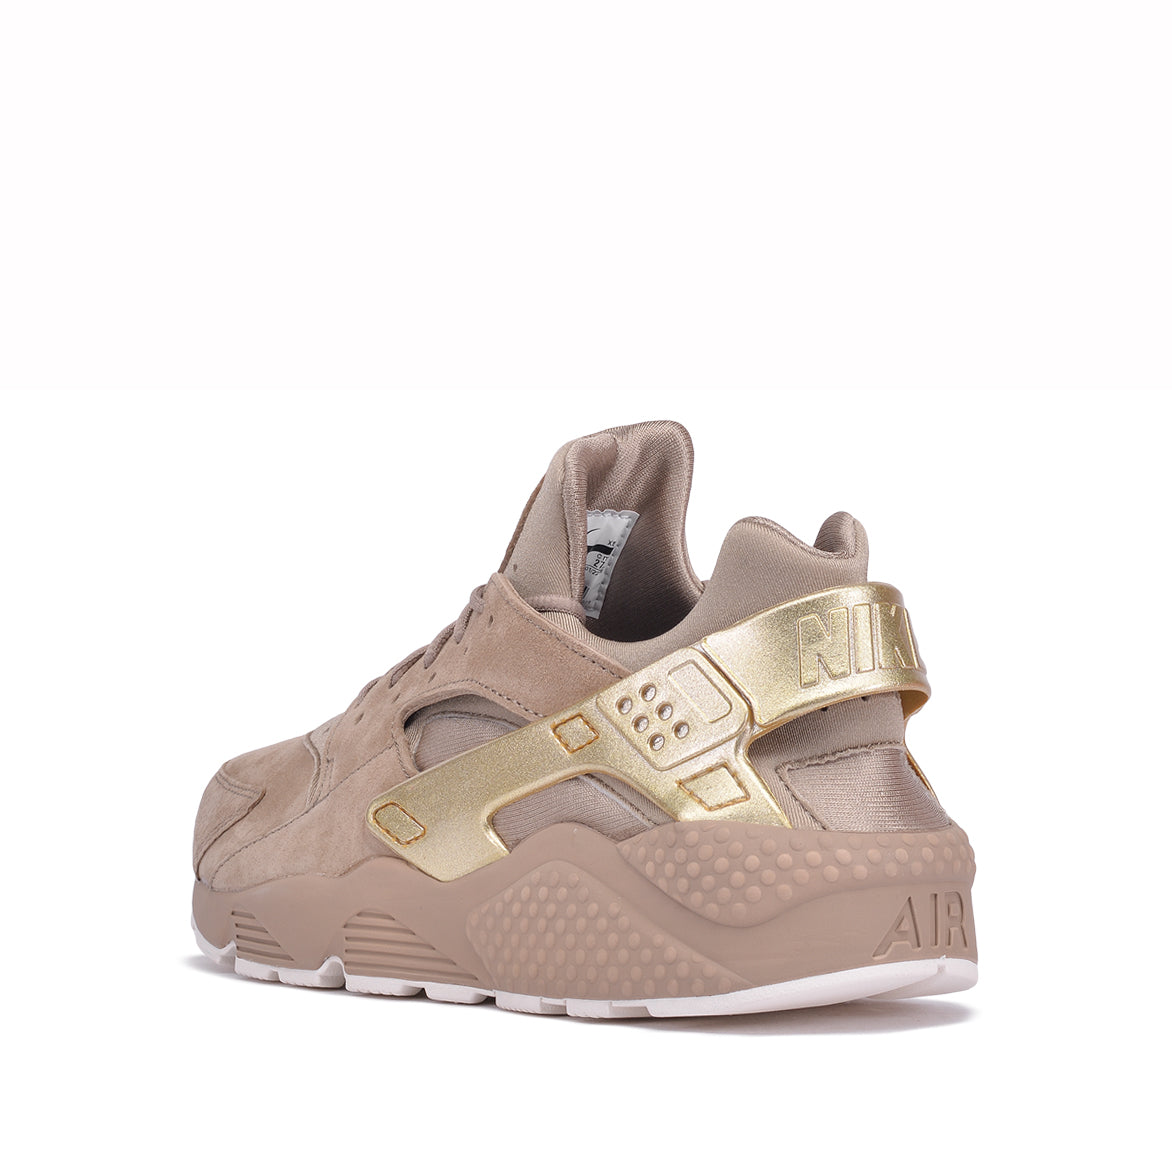 d4a9cac7cce3 ... AIR HUARACHE RUN PRM - KHAKI   METALLIC GOLD COIN ...